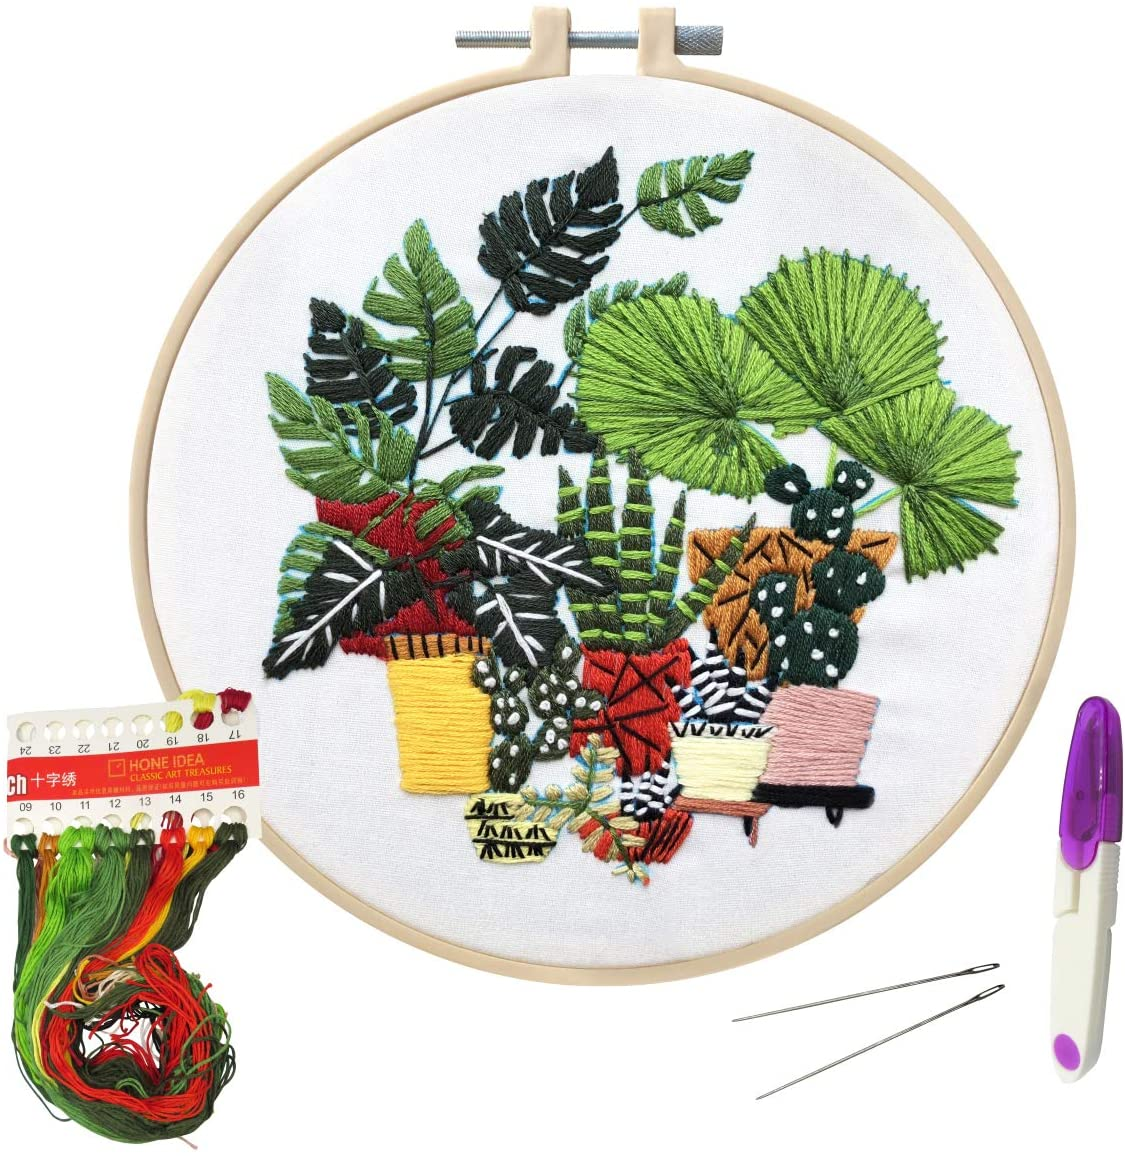 Cross Stitch Stamped Embroidery Kit- Full Range of Stamped Embroidery Kits for DIY Beginner Starter-Including Color Pattern Embroidery Cloth,Embroidery Hoop,Color Threads,Tools (Color 4)